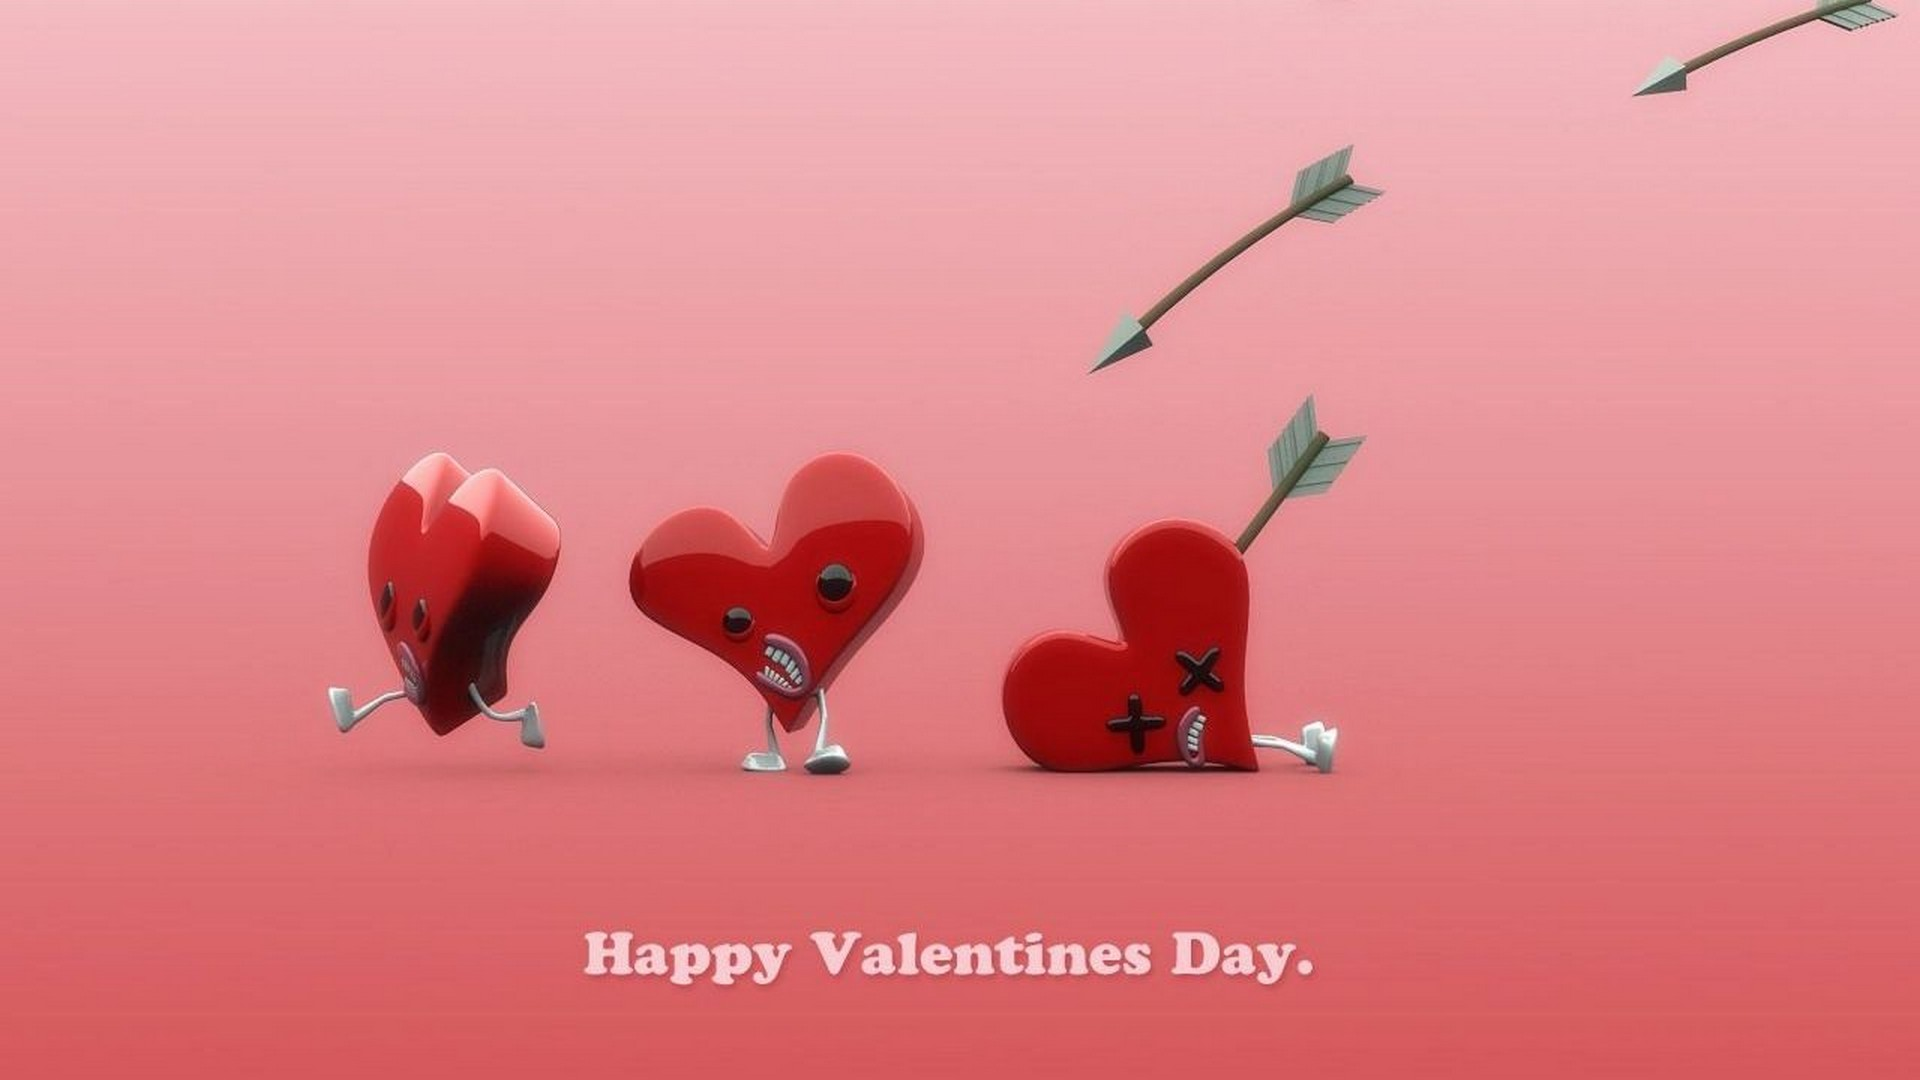 Animated Valentines Day Wallpaper 2021 Cute Wallpapers 1920x1080